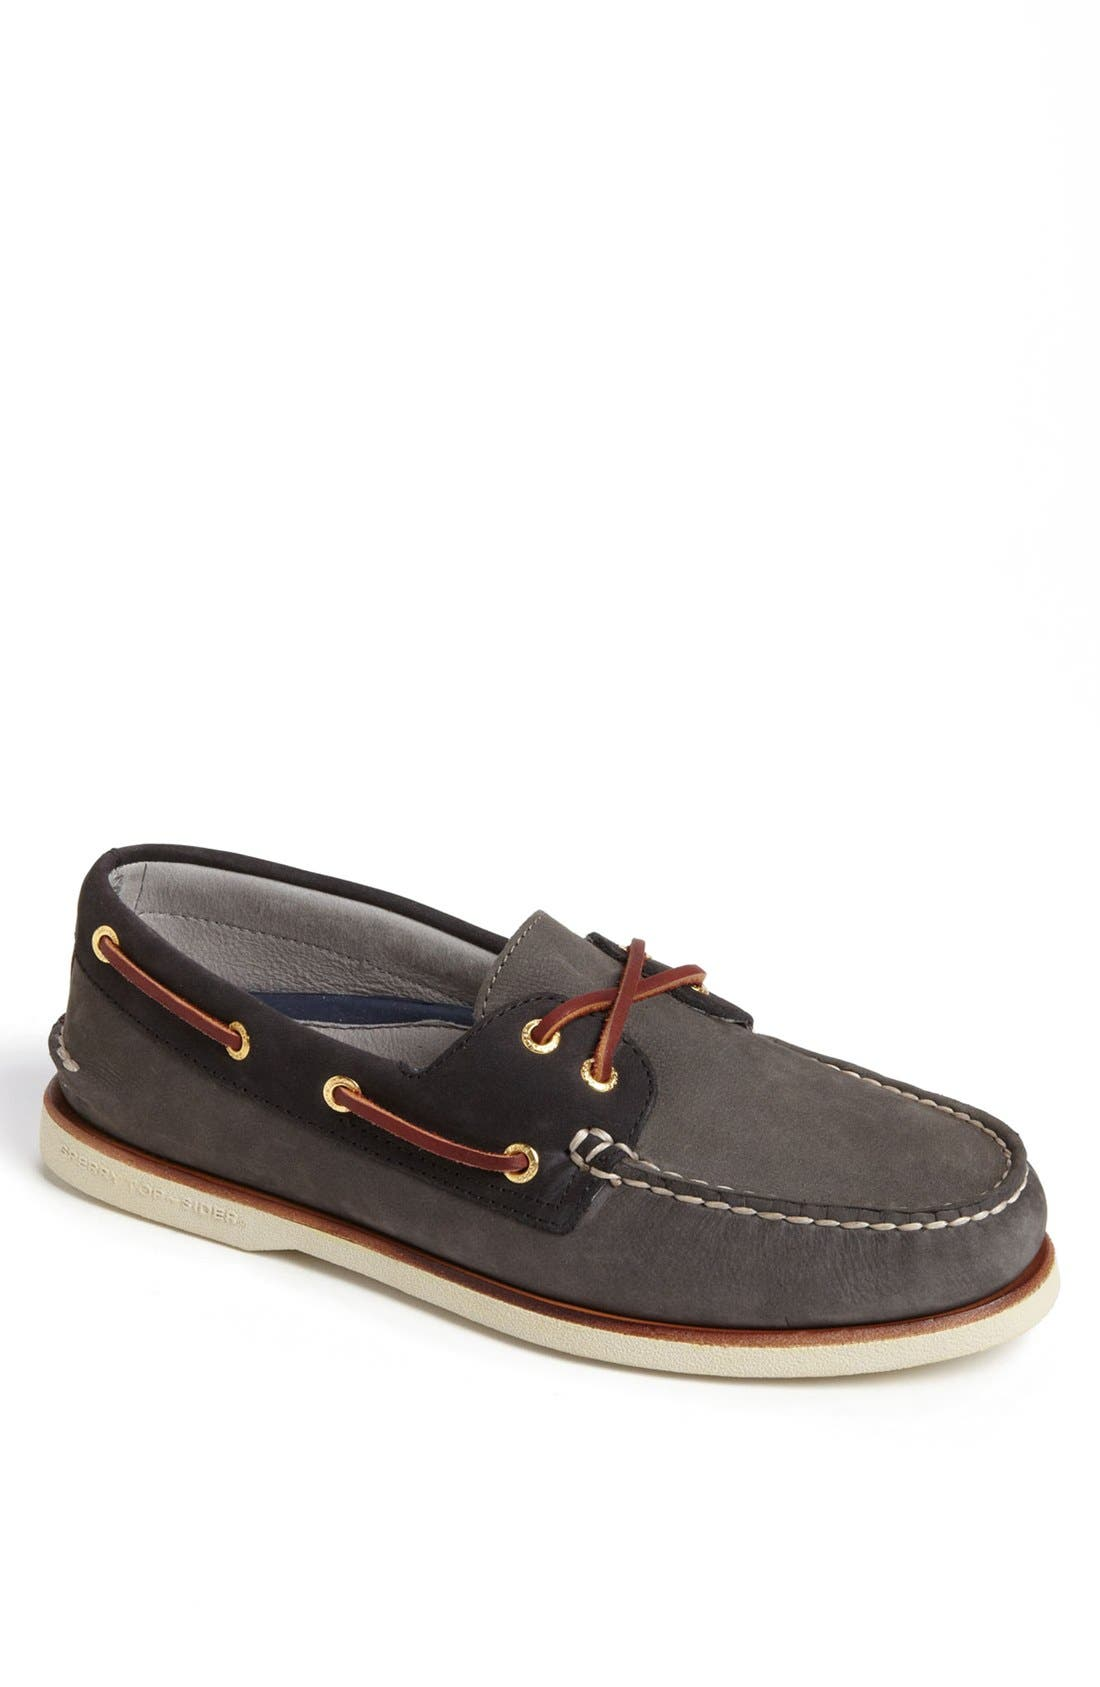 Alternate Image 1 Selected - Sperry Top-Sider® 'Gold Cup - Authentic Original' Boat Shoe